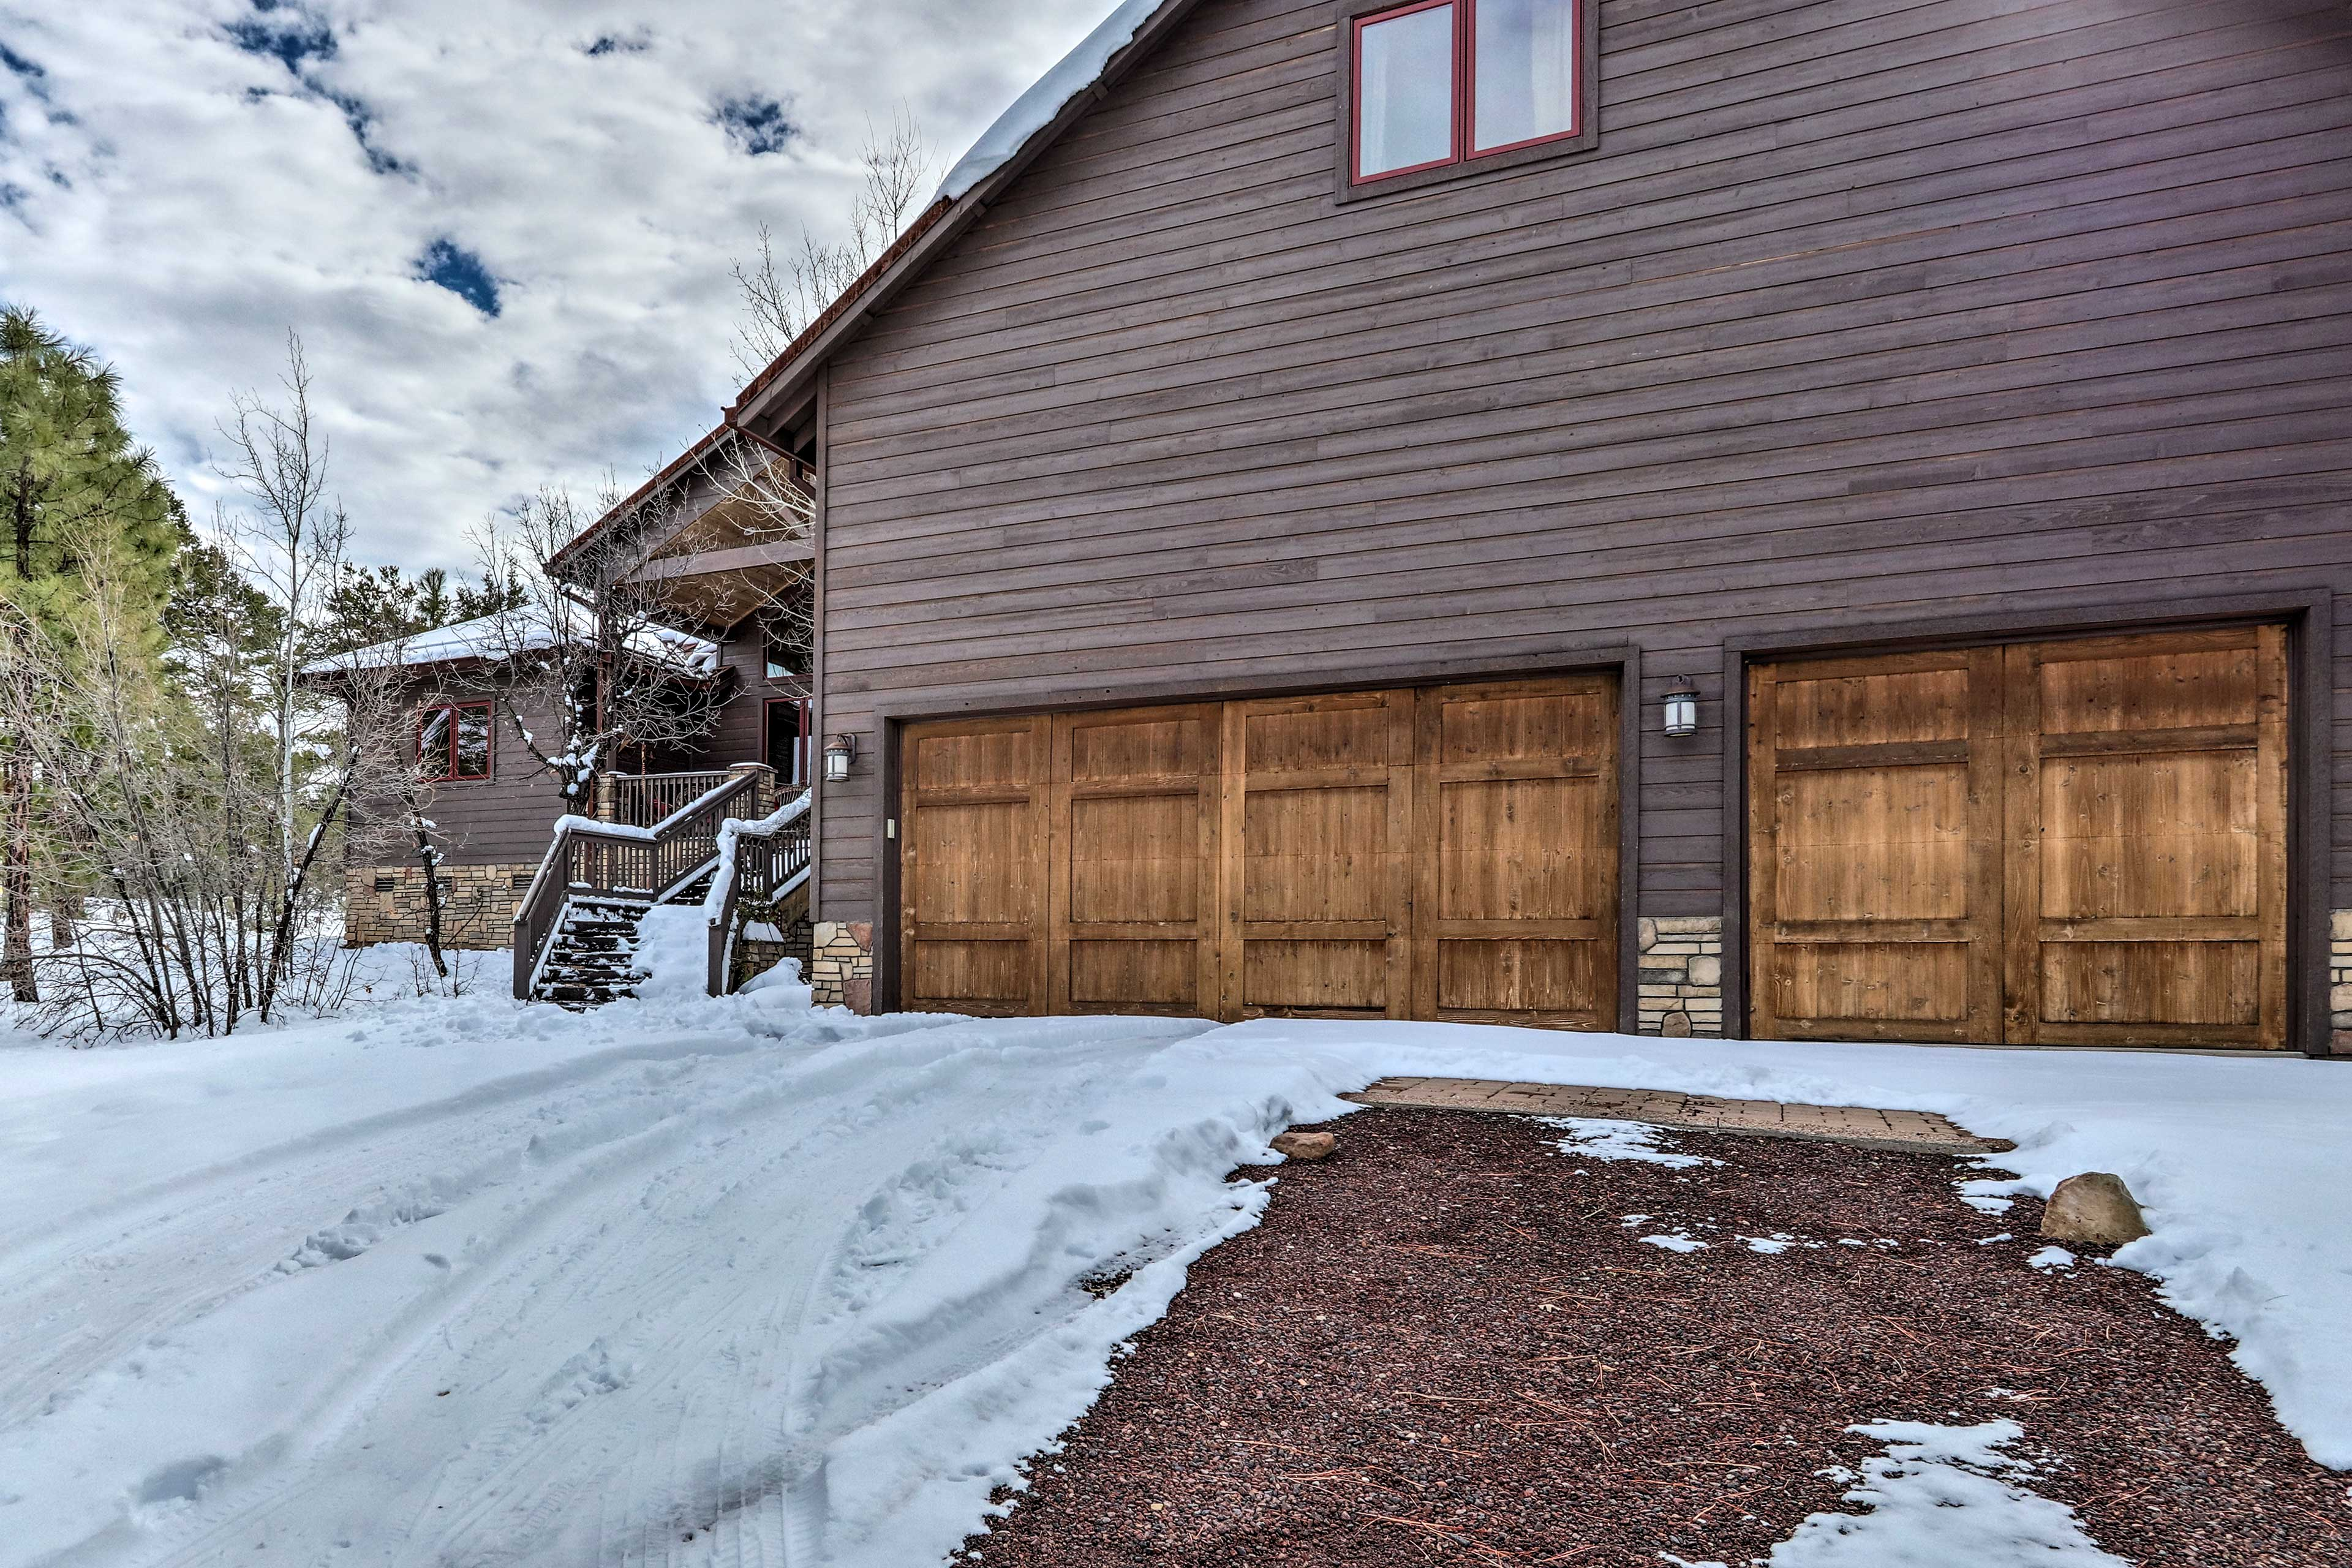 Parking is available in both the garage and driveway.